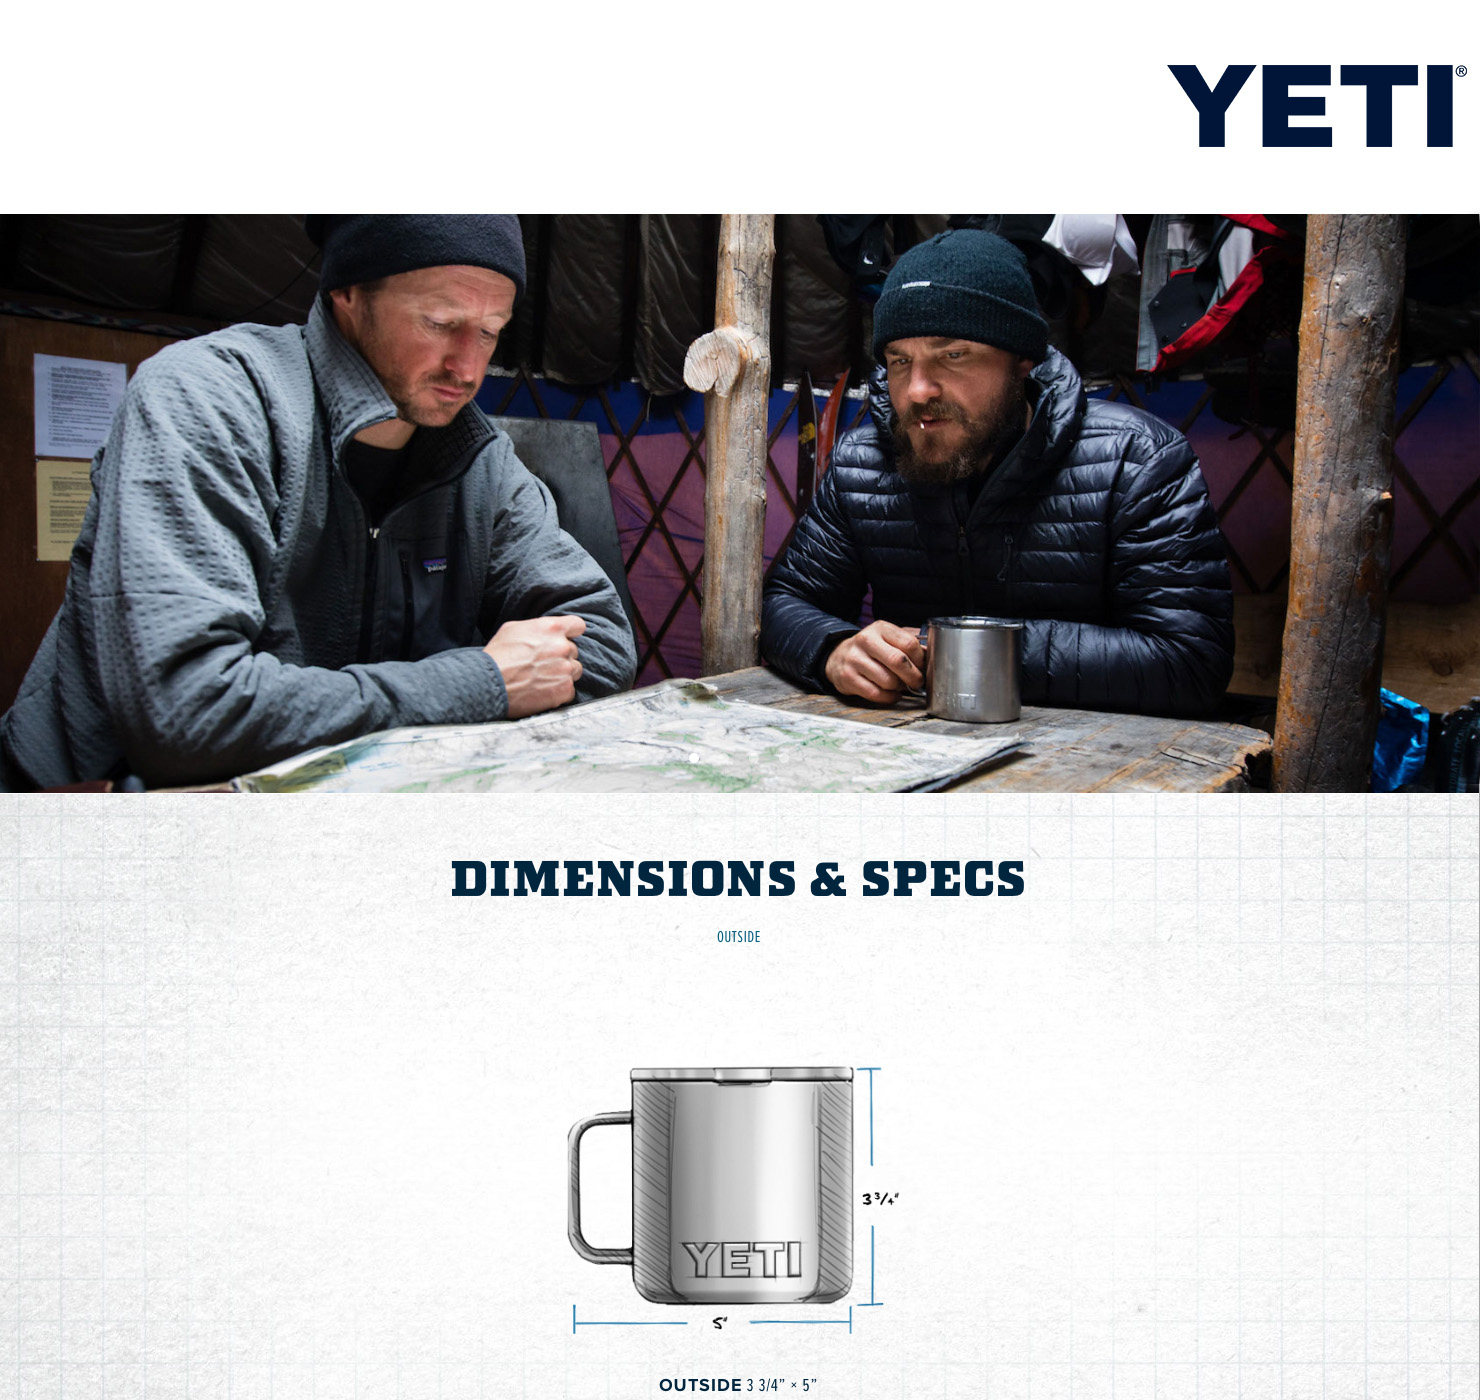 yeti-photography-mugs-lifestyle-snowboarders-mark-carter-forrest-shearer